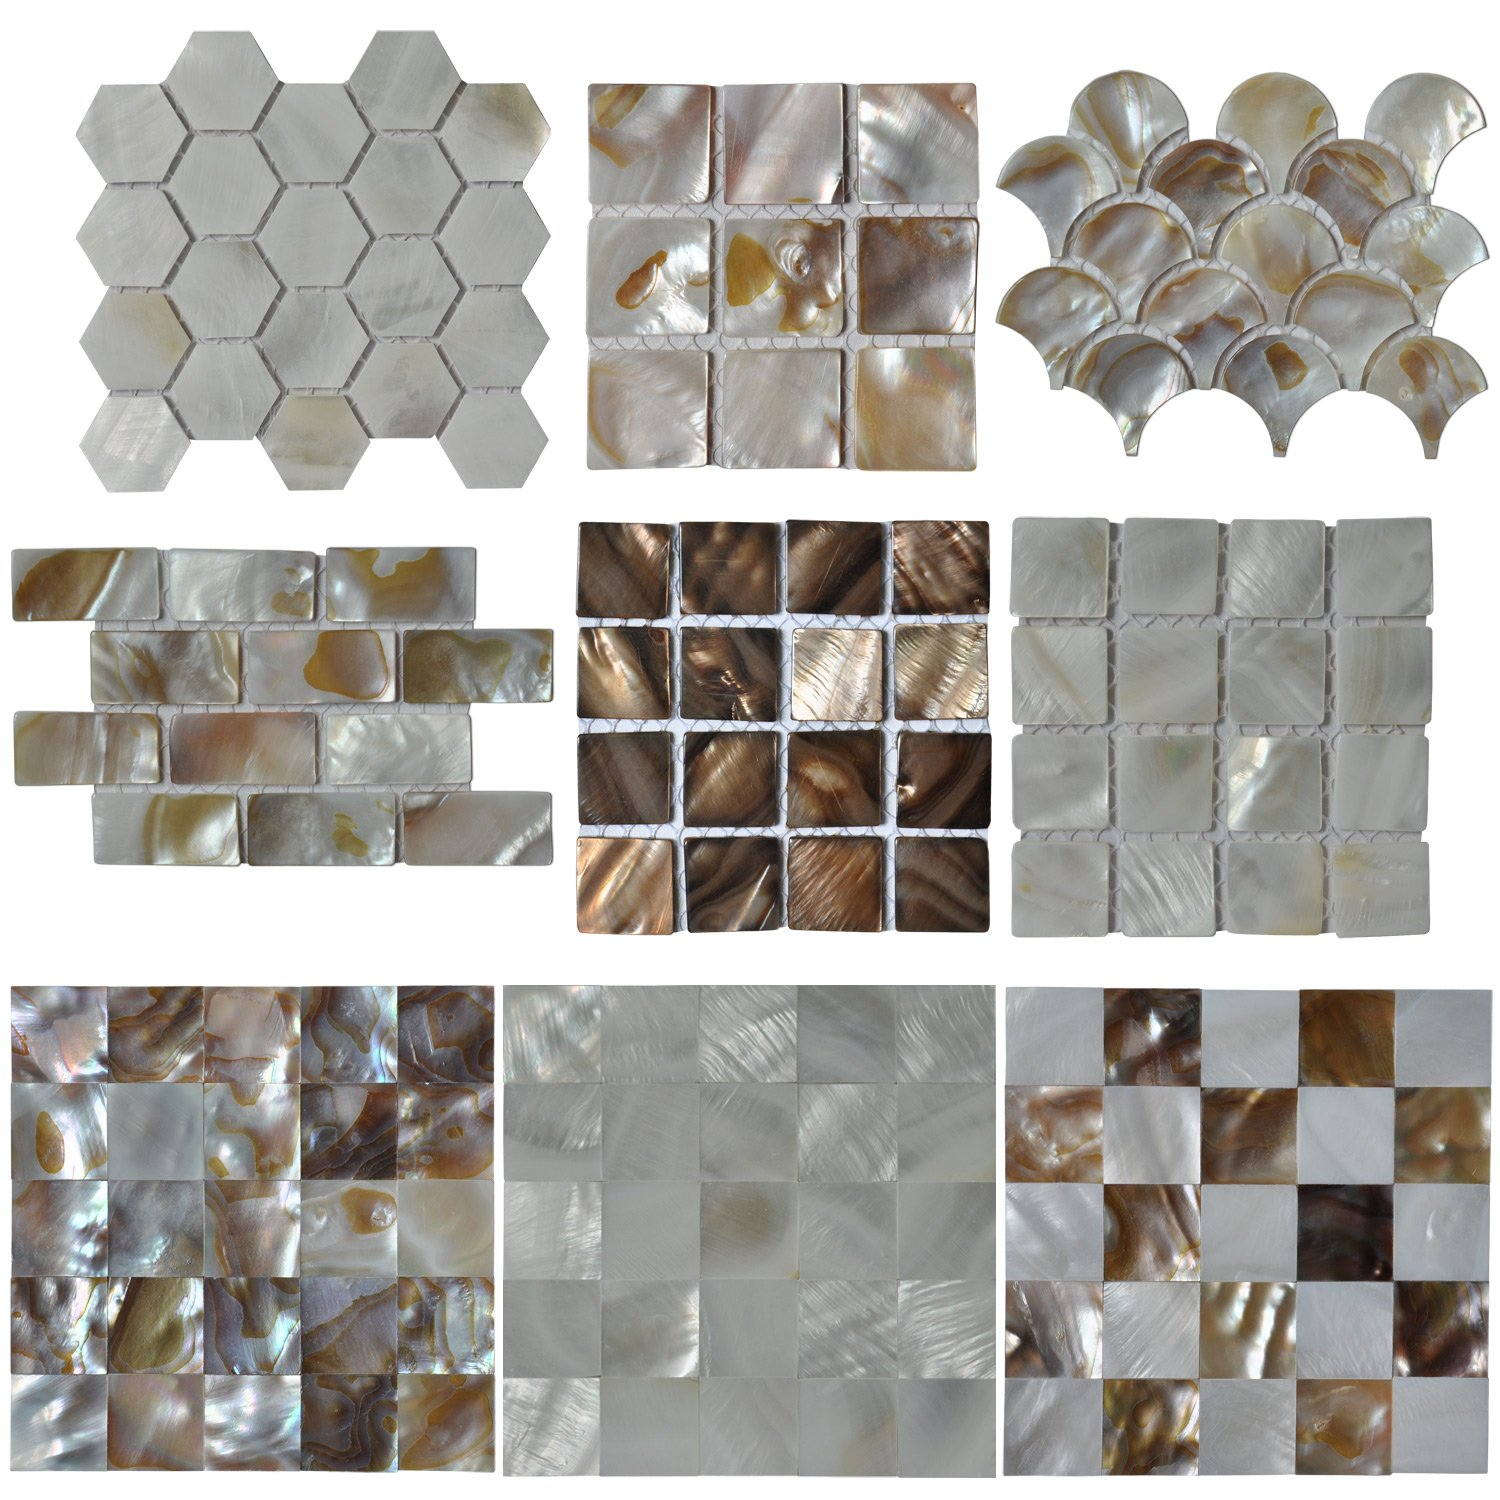 Glass tiles amazon kitchen bath fixtures kitchen art3d mother of pearl mop shell mosaic tiles 9 samples dailygadgetfo Choice Image